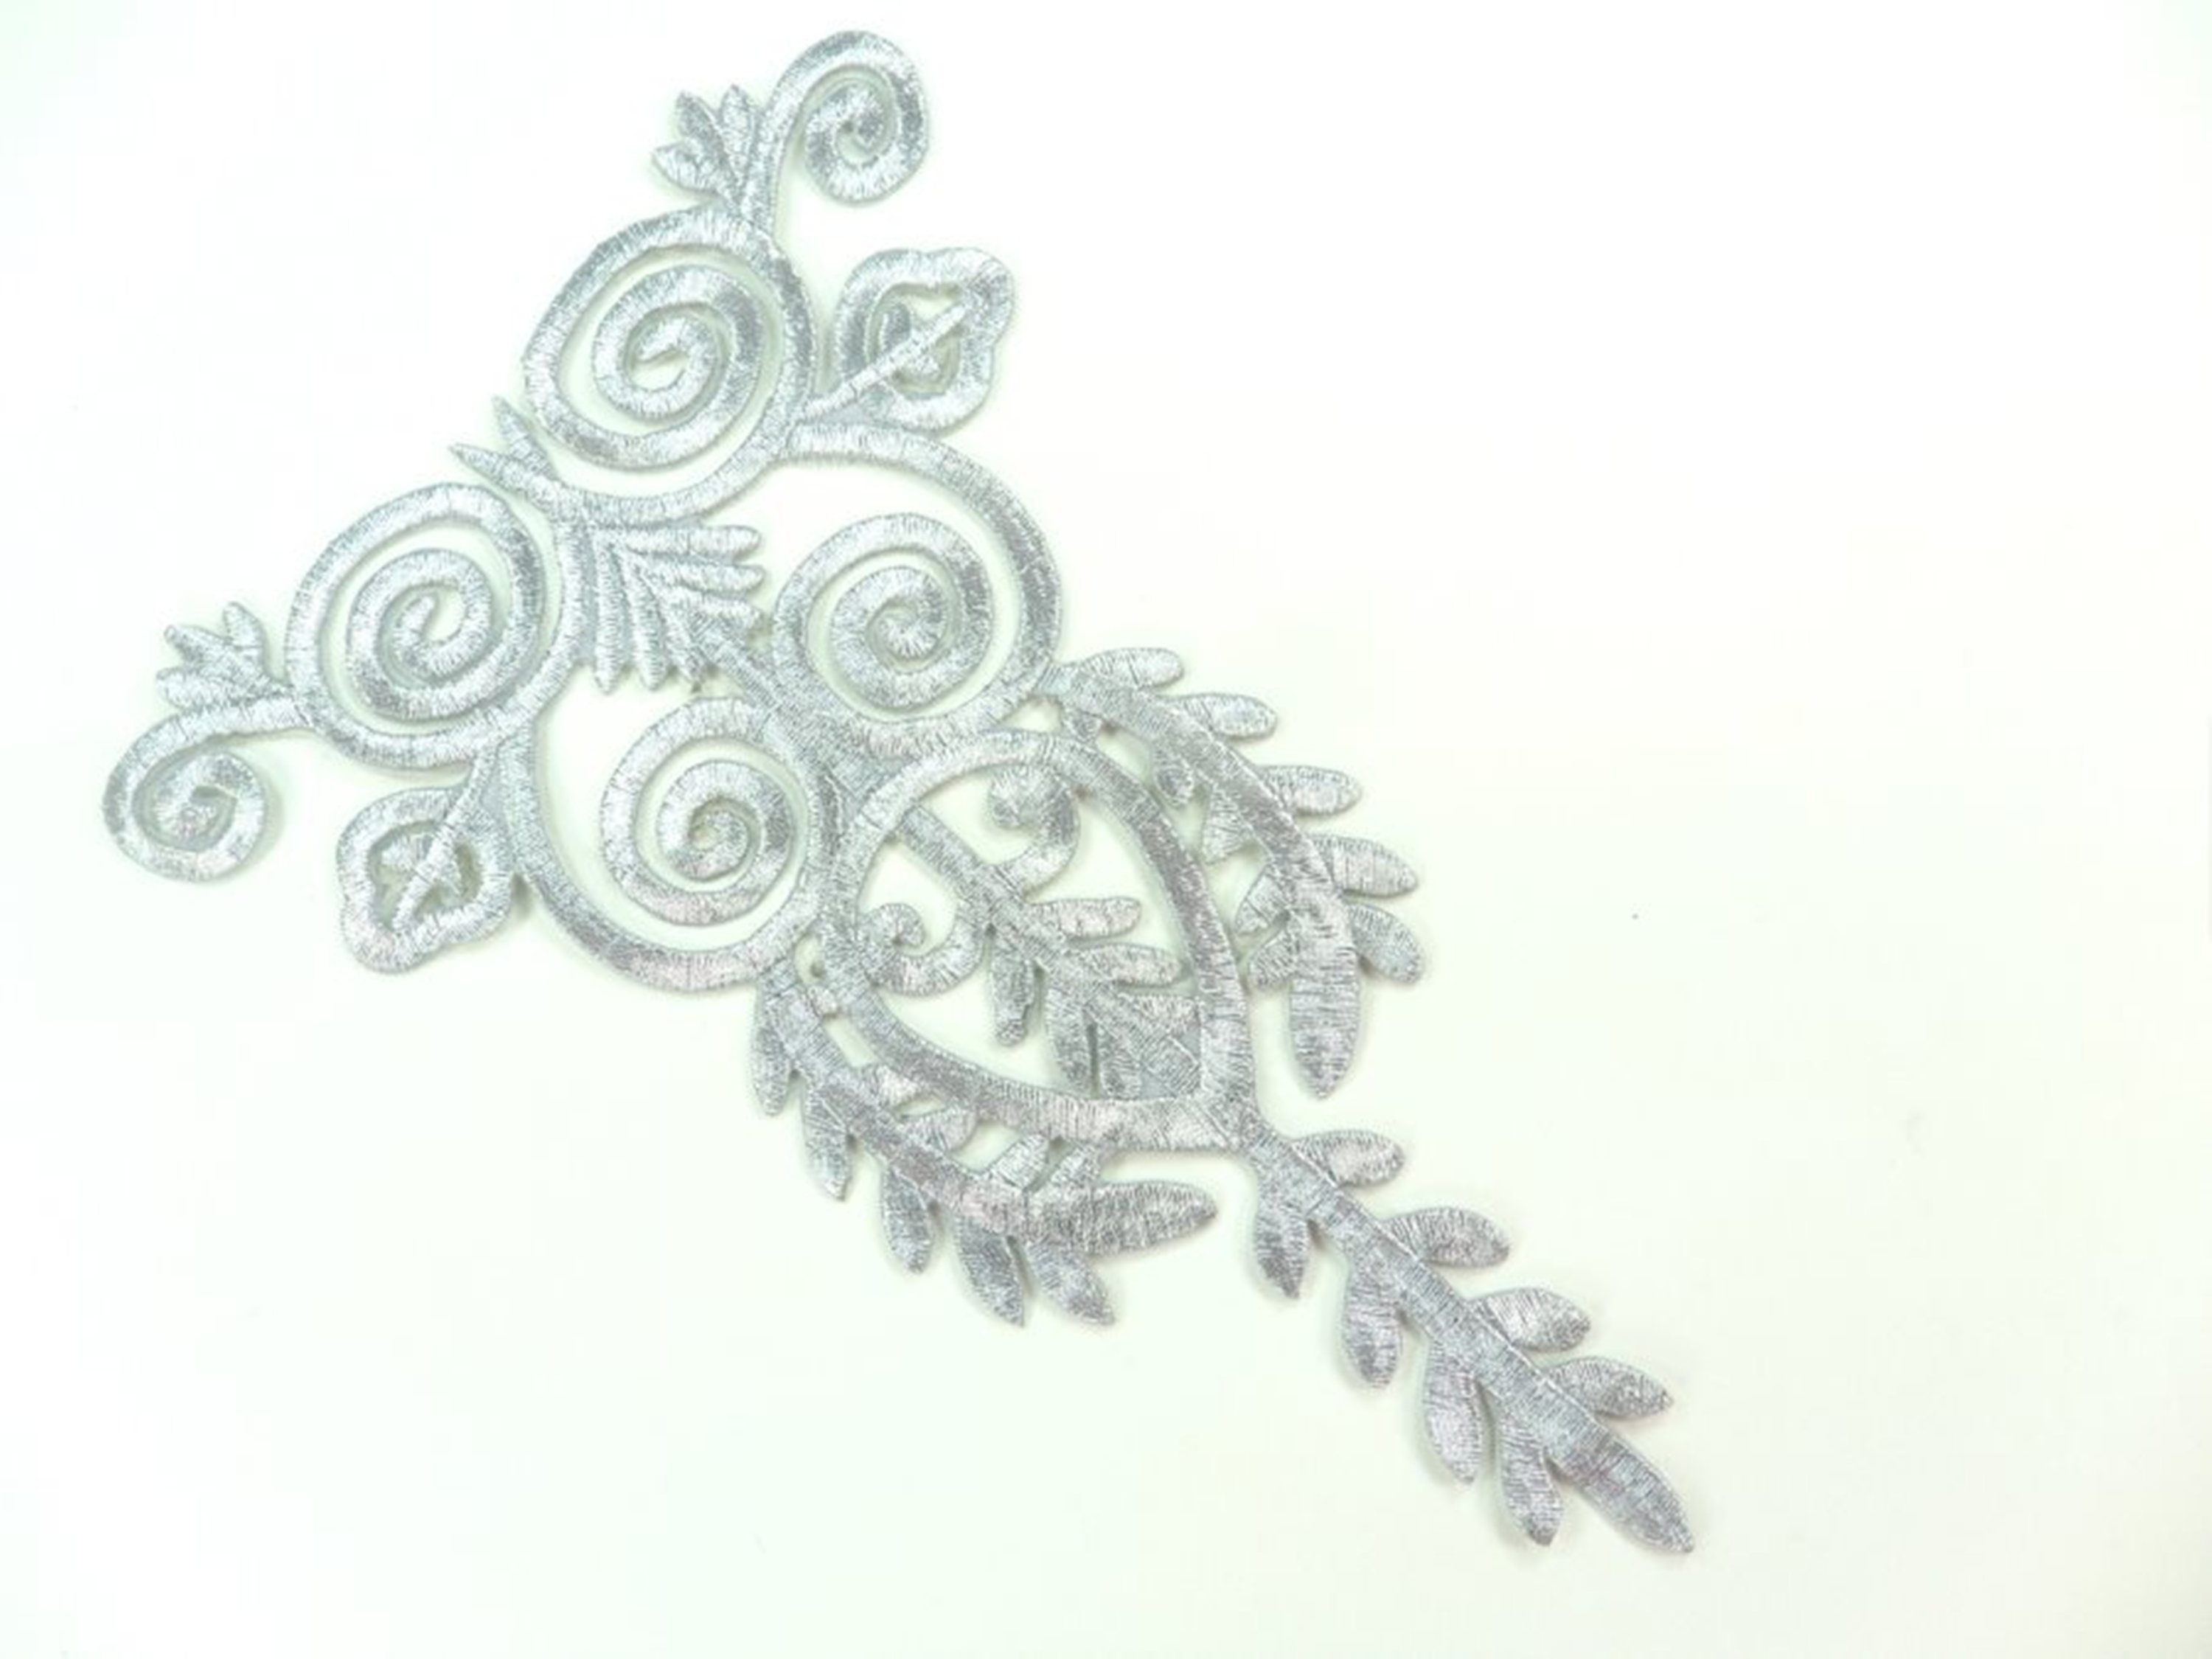 "Silver Embroidered Applique Metallic Designer Scroll Motif 7.5"" GB907"